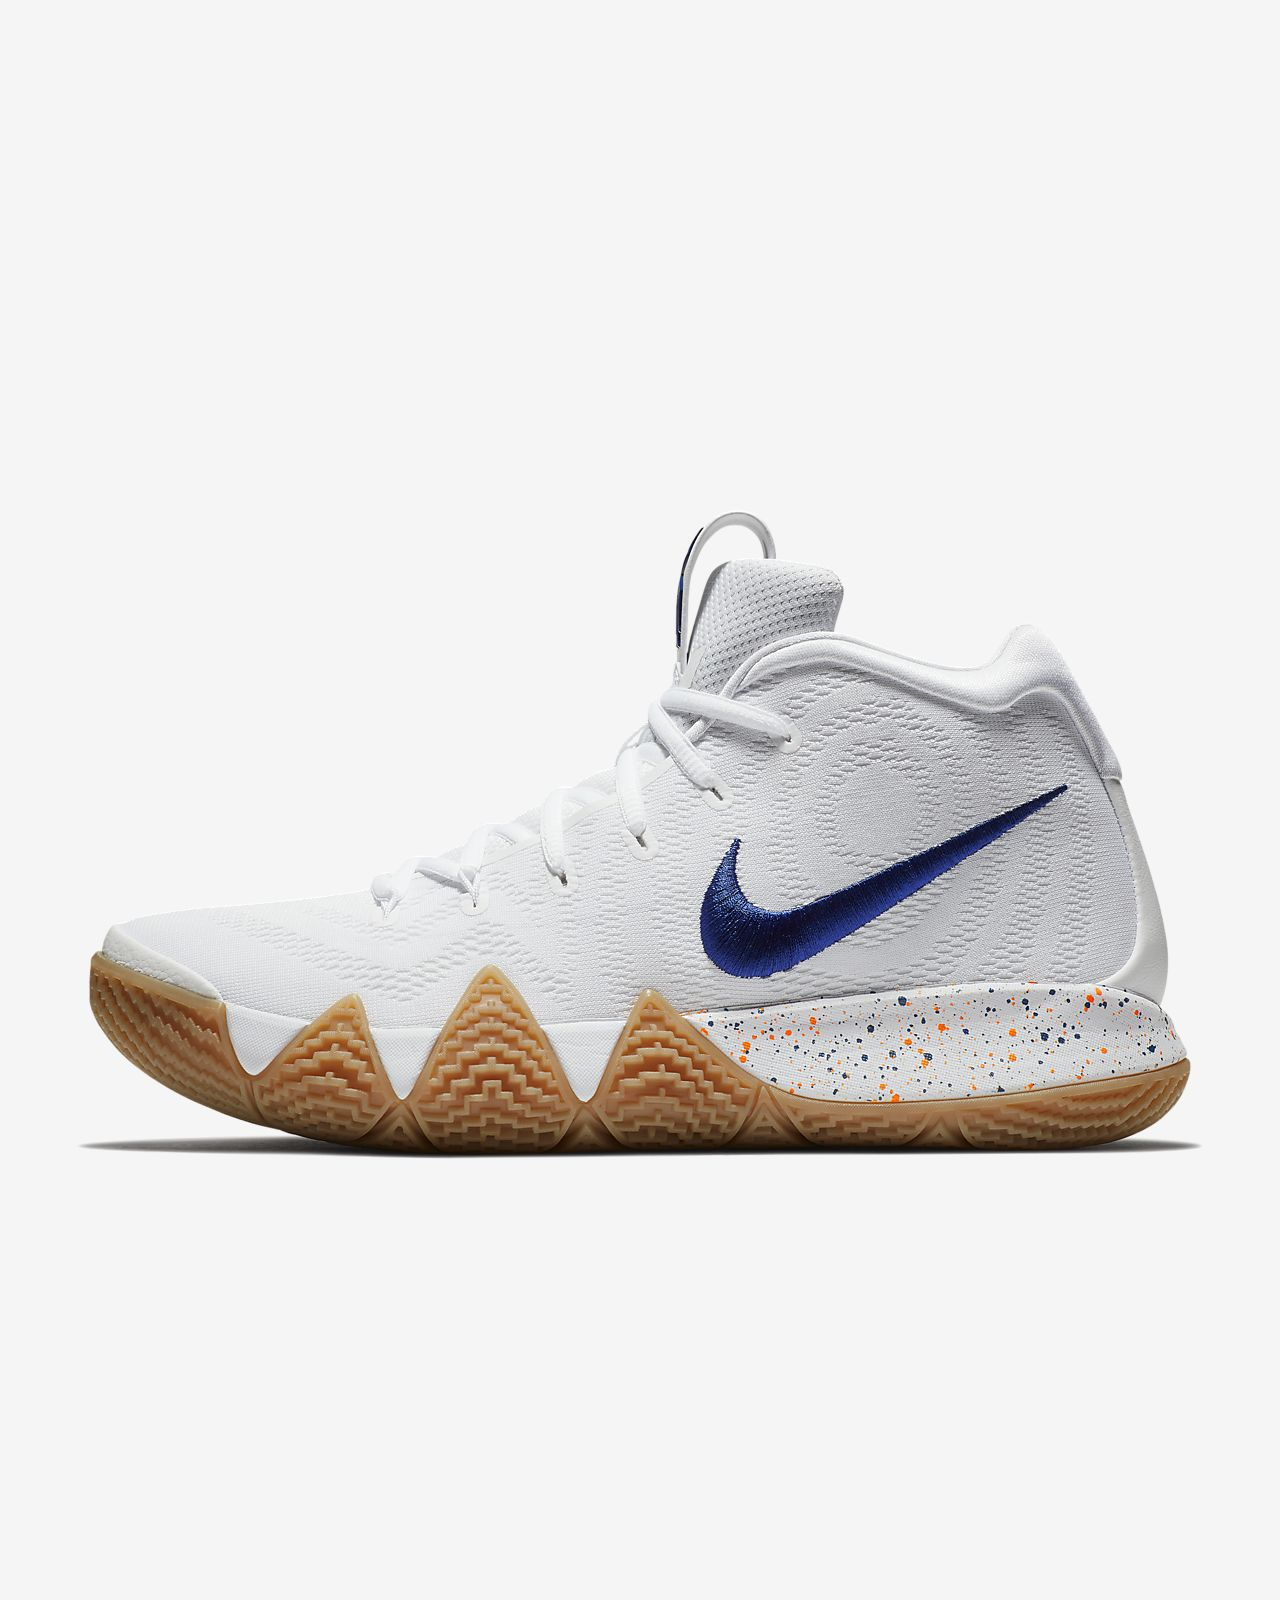 separation shoes 776c5 d8d18 Kyrie 4  Uncle Drew